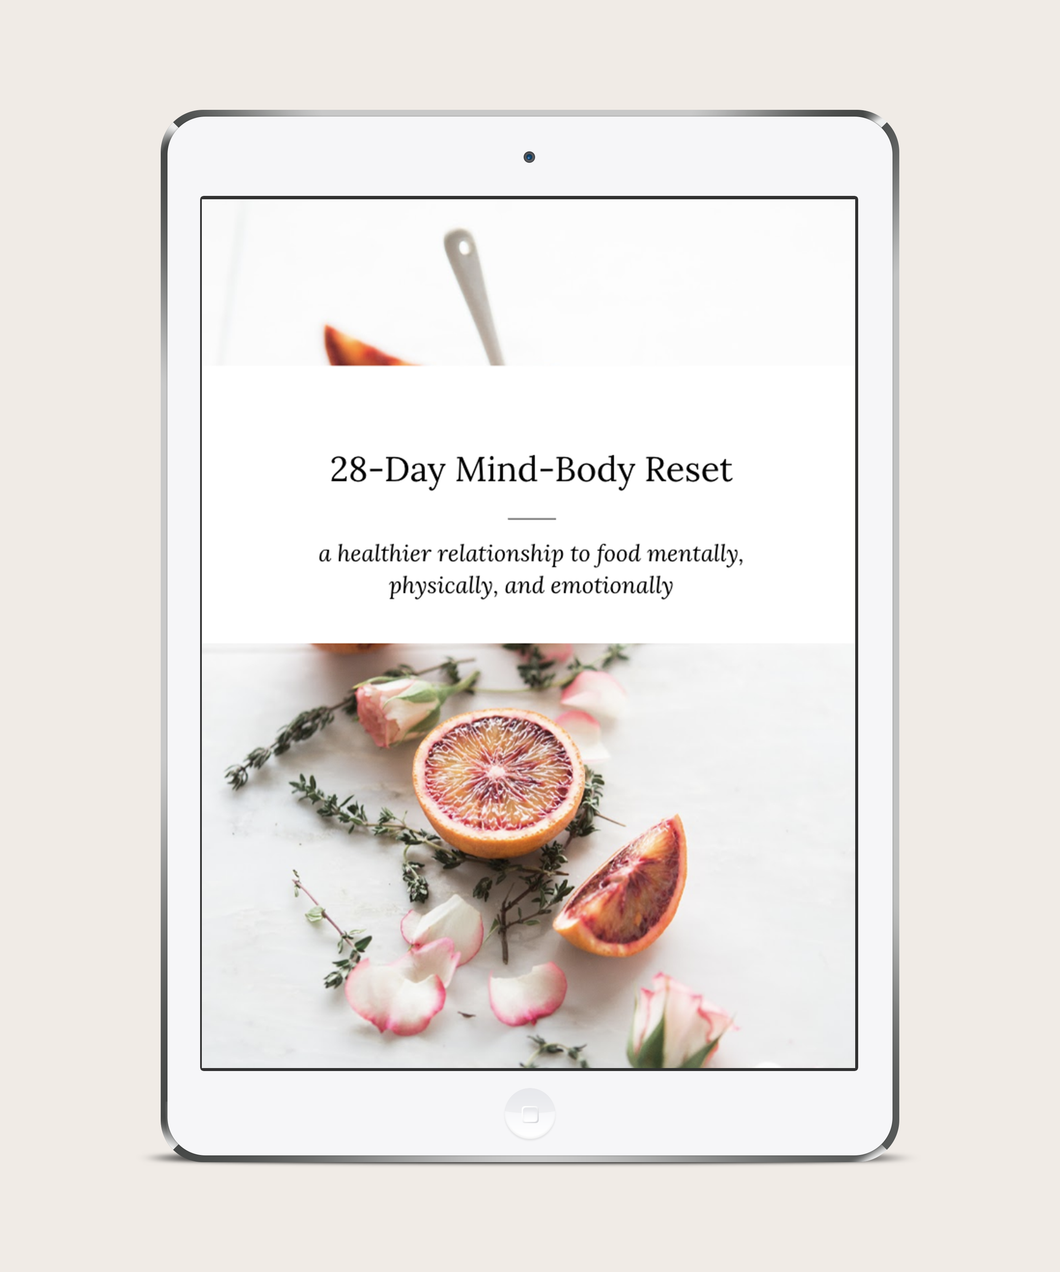 28-Day Mind-Body Reset